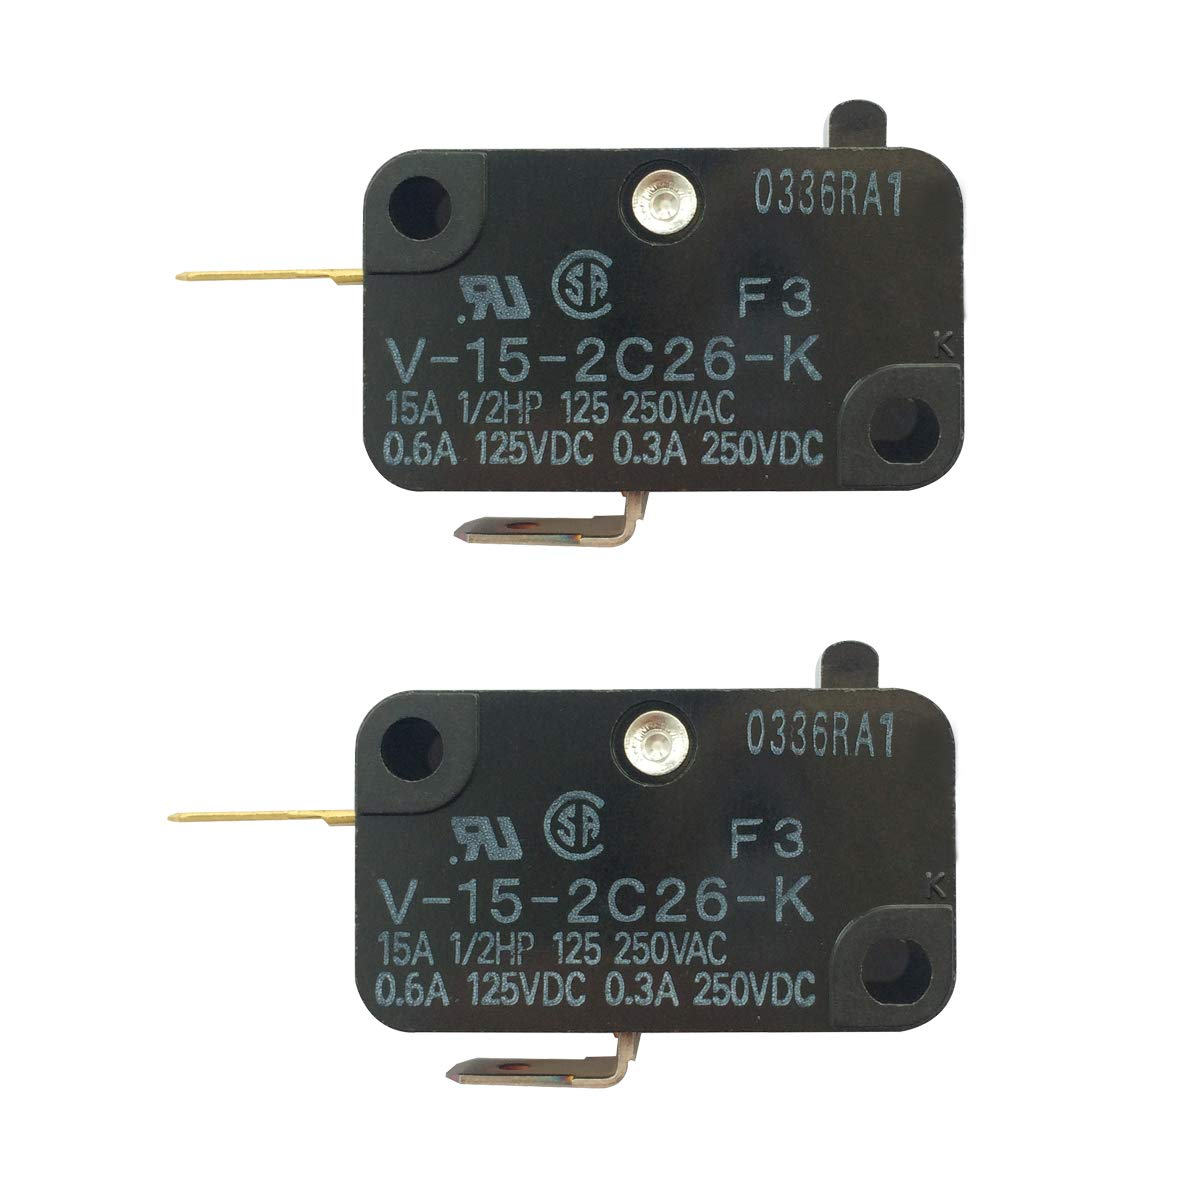 LONYE V-15-2C26-K Switch Snap Action Micro Switch Replacement for OMRON Switch Shurflo 2088 Series Pump 15A 125/250VAC (Normally Closed) (Pack of 2)